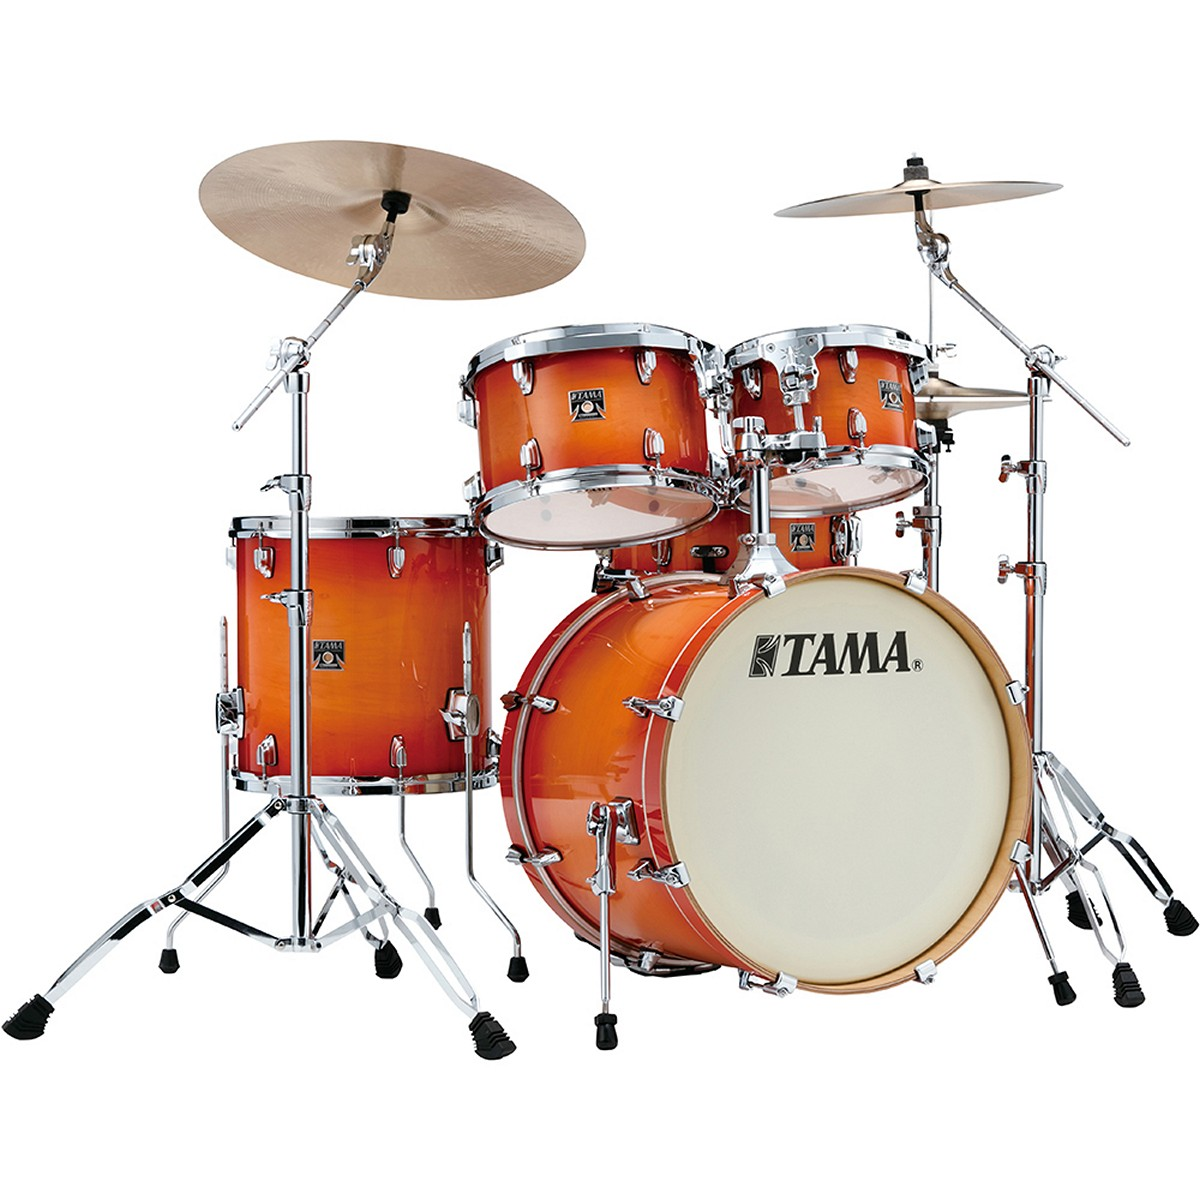 TAMA CL50RS-TLB - SHELL KIT - FINITURA TANGERINE LACQUER BURST